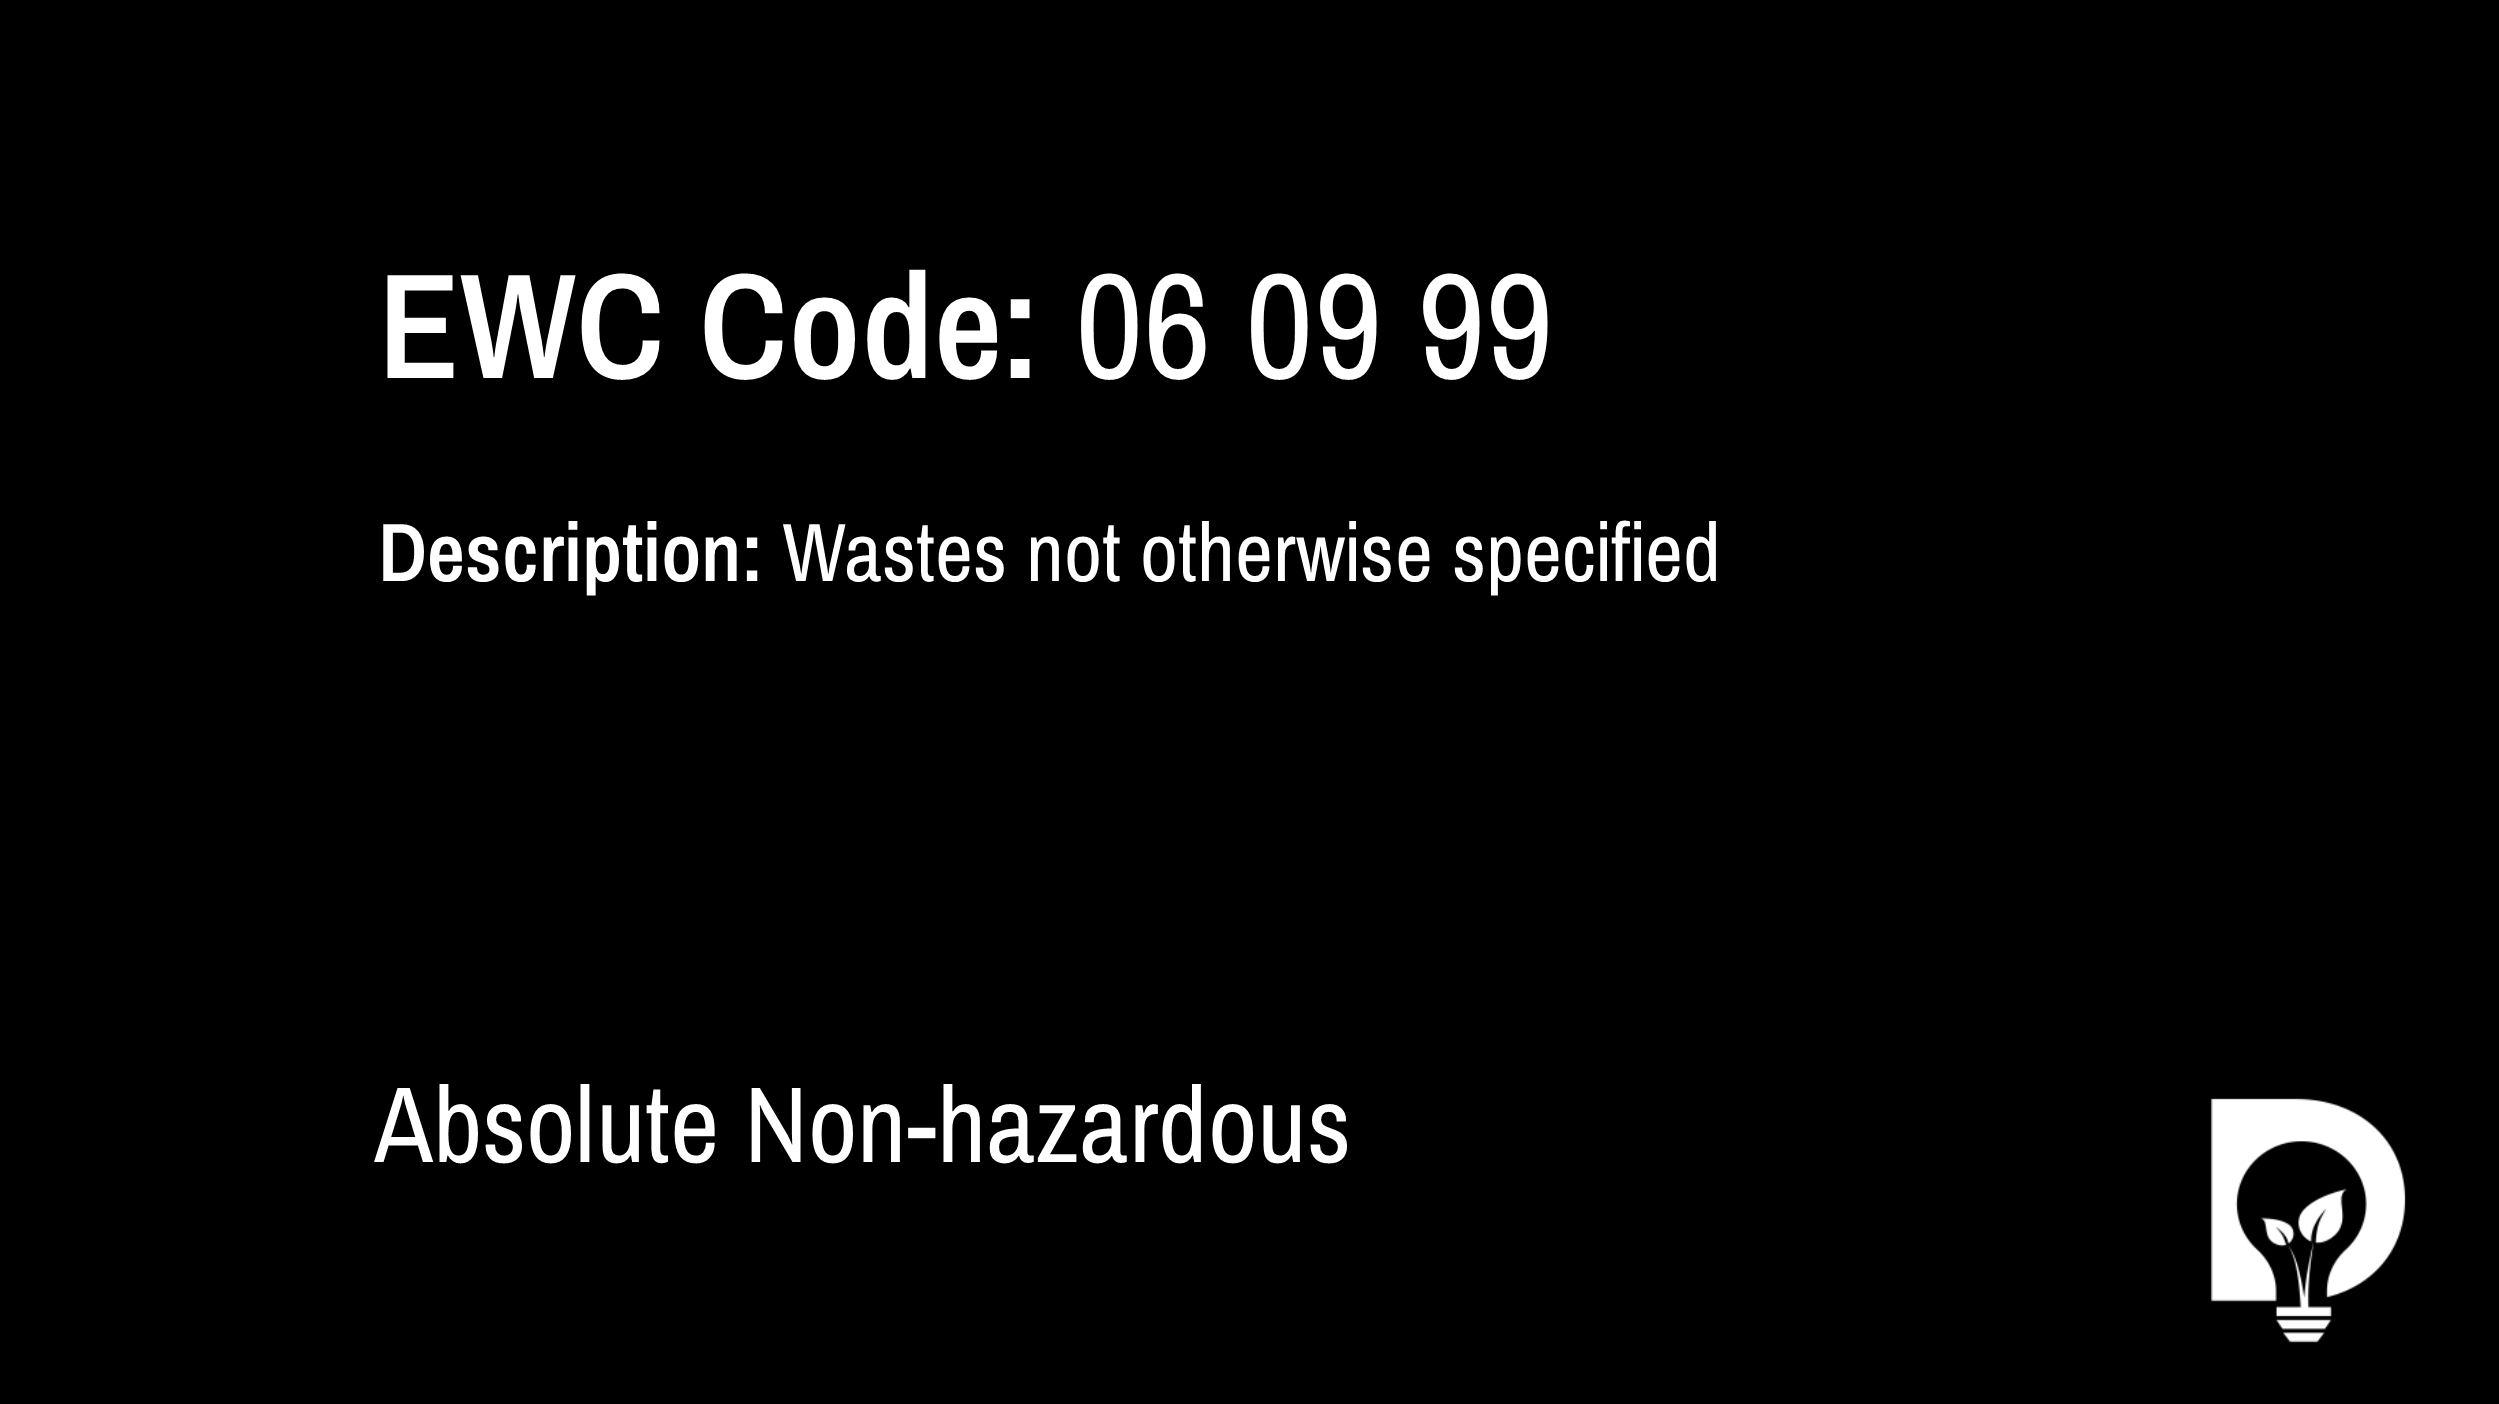 EWC Code: 06 09 99 - wastes not otherwise specified. Type: Absolute Non-hazardous. Image by Dsposal